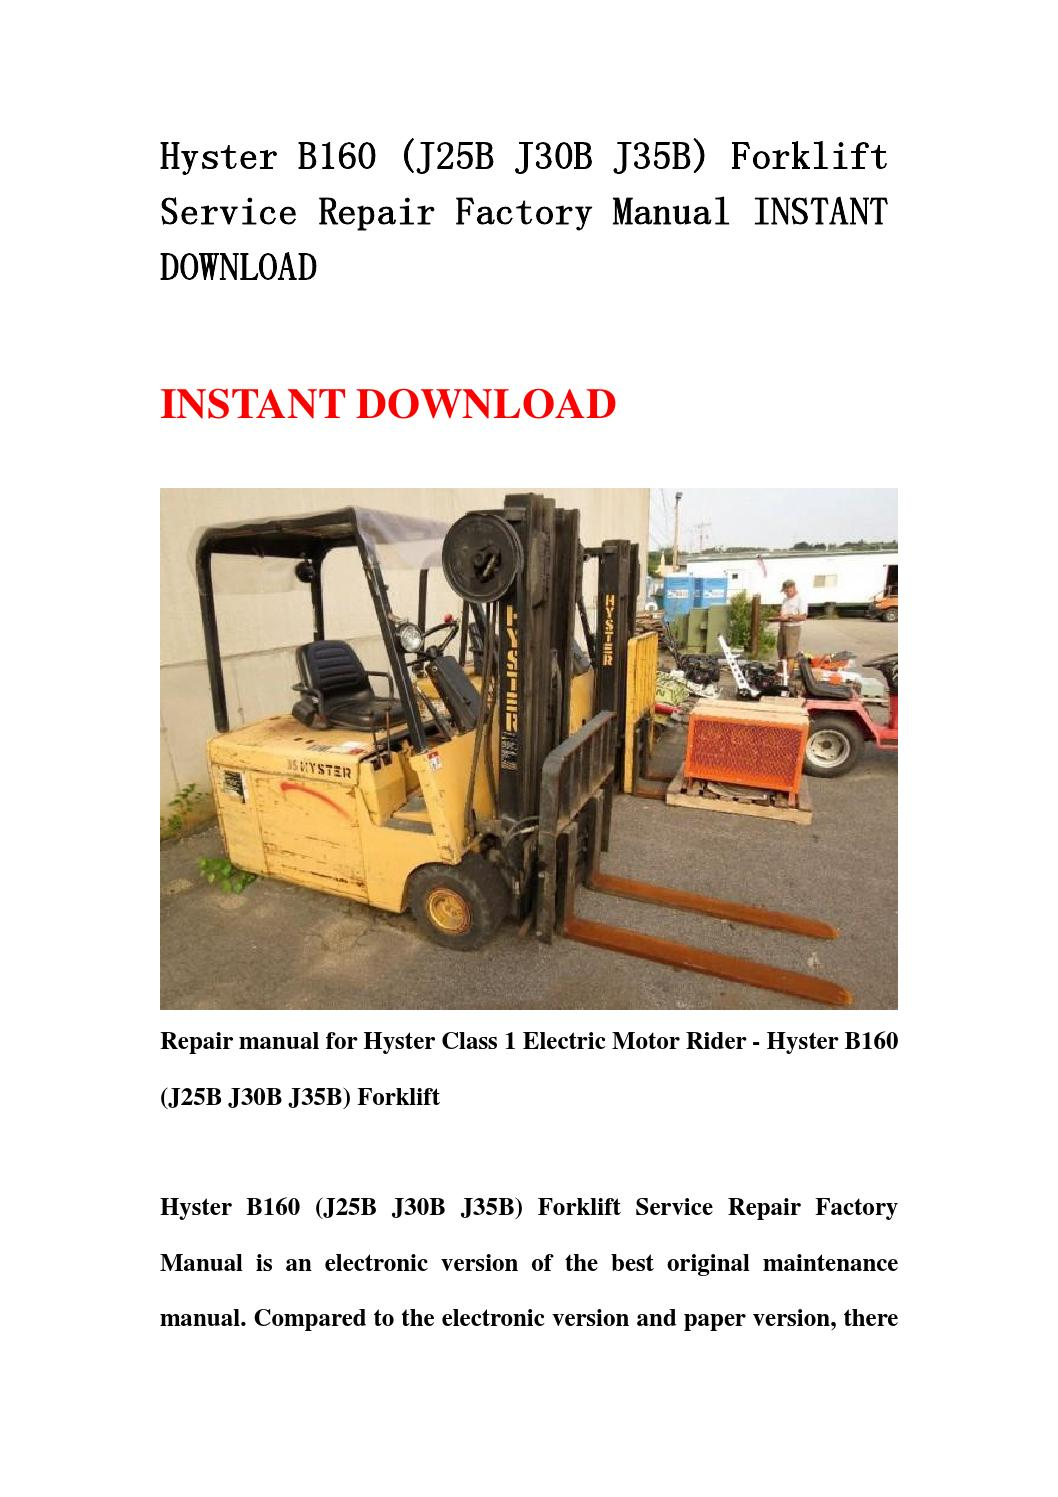 hyster forklift repair manual pdf